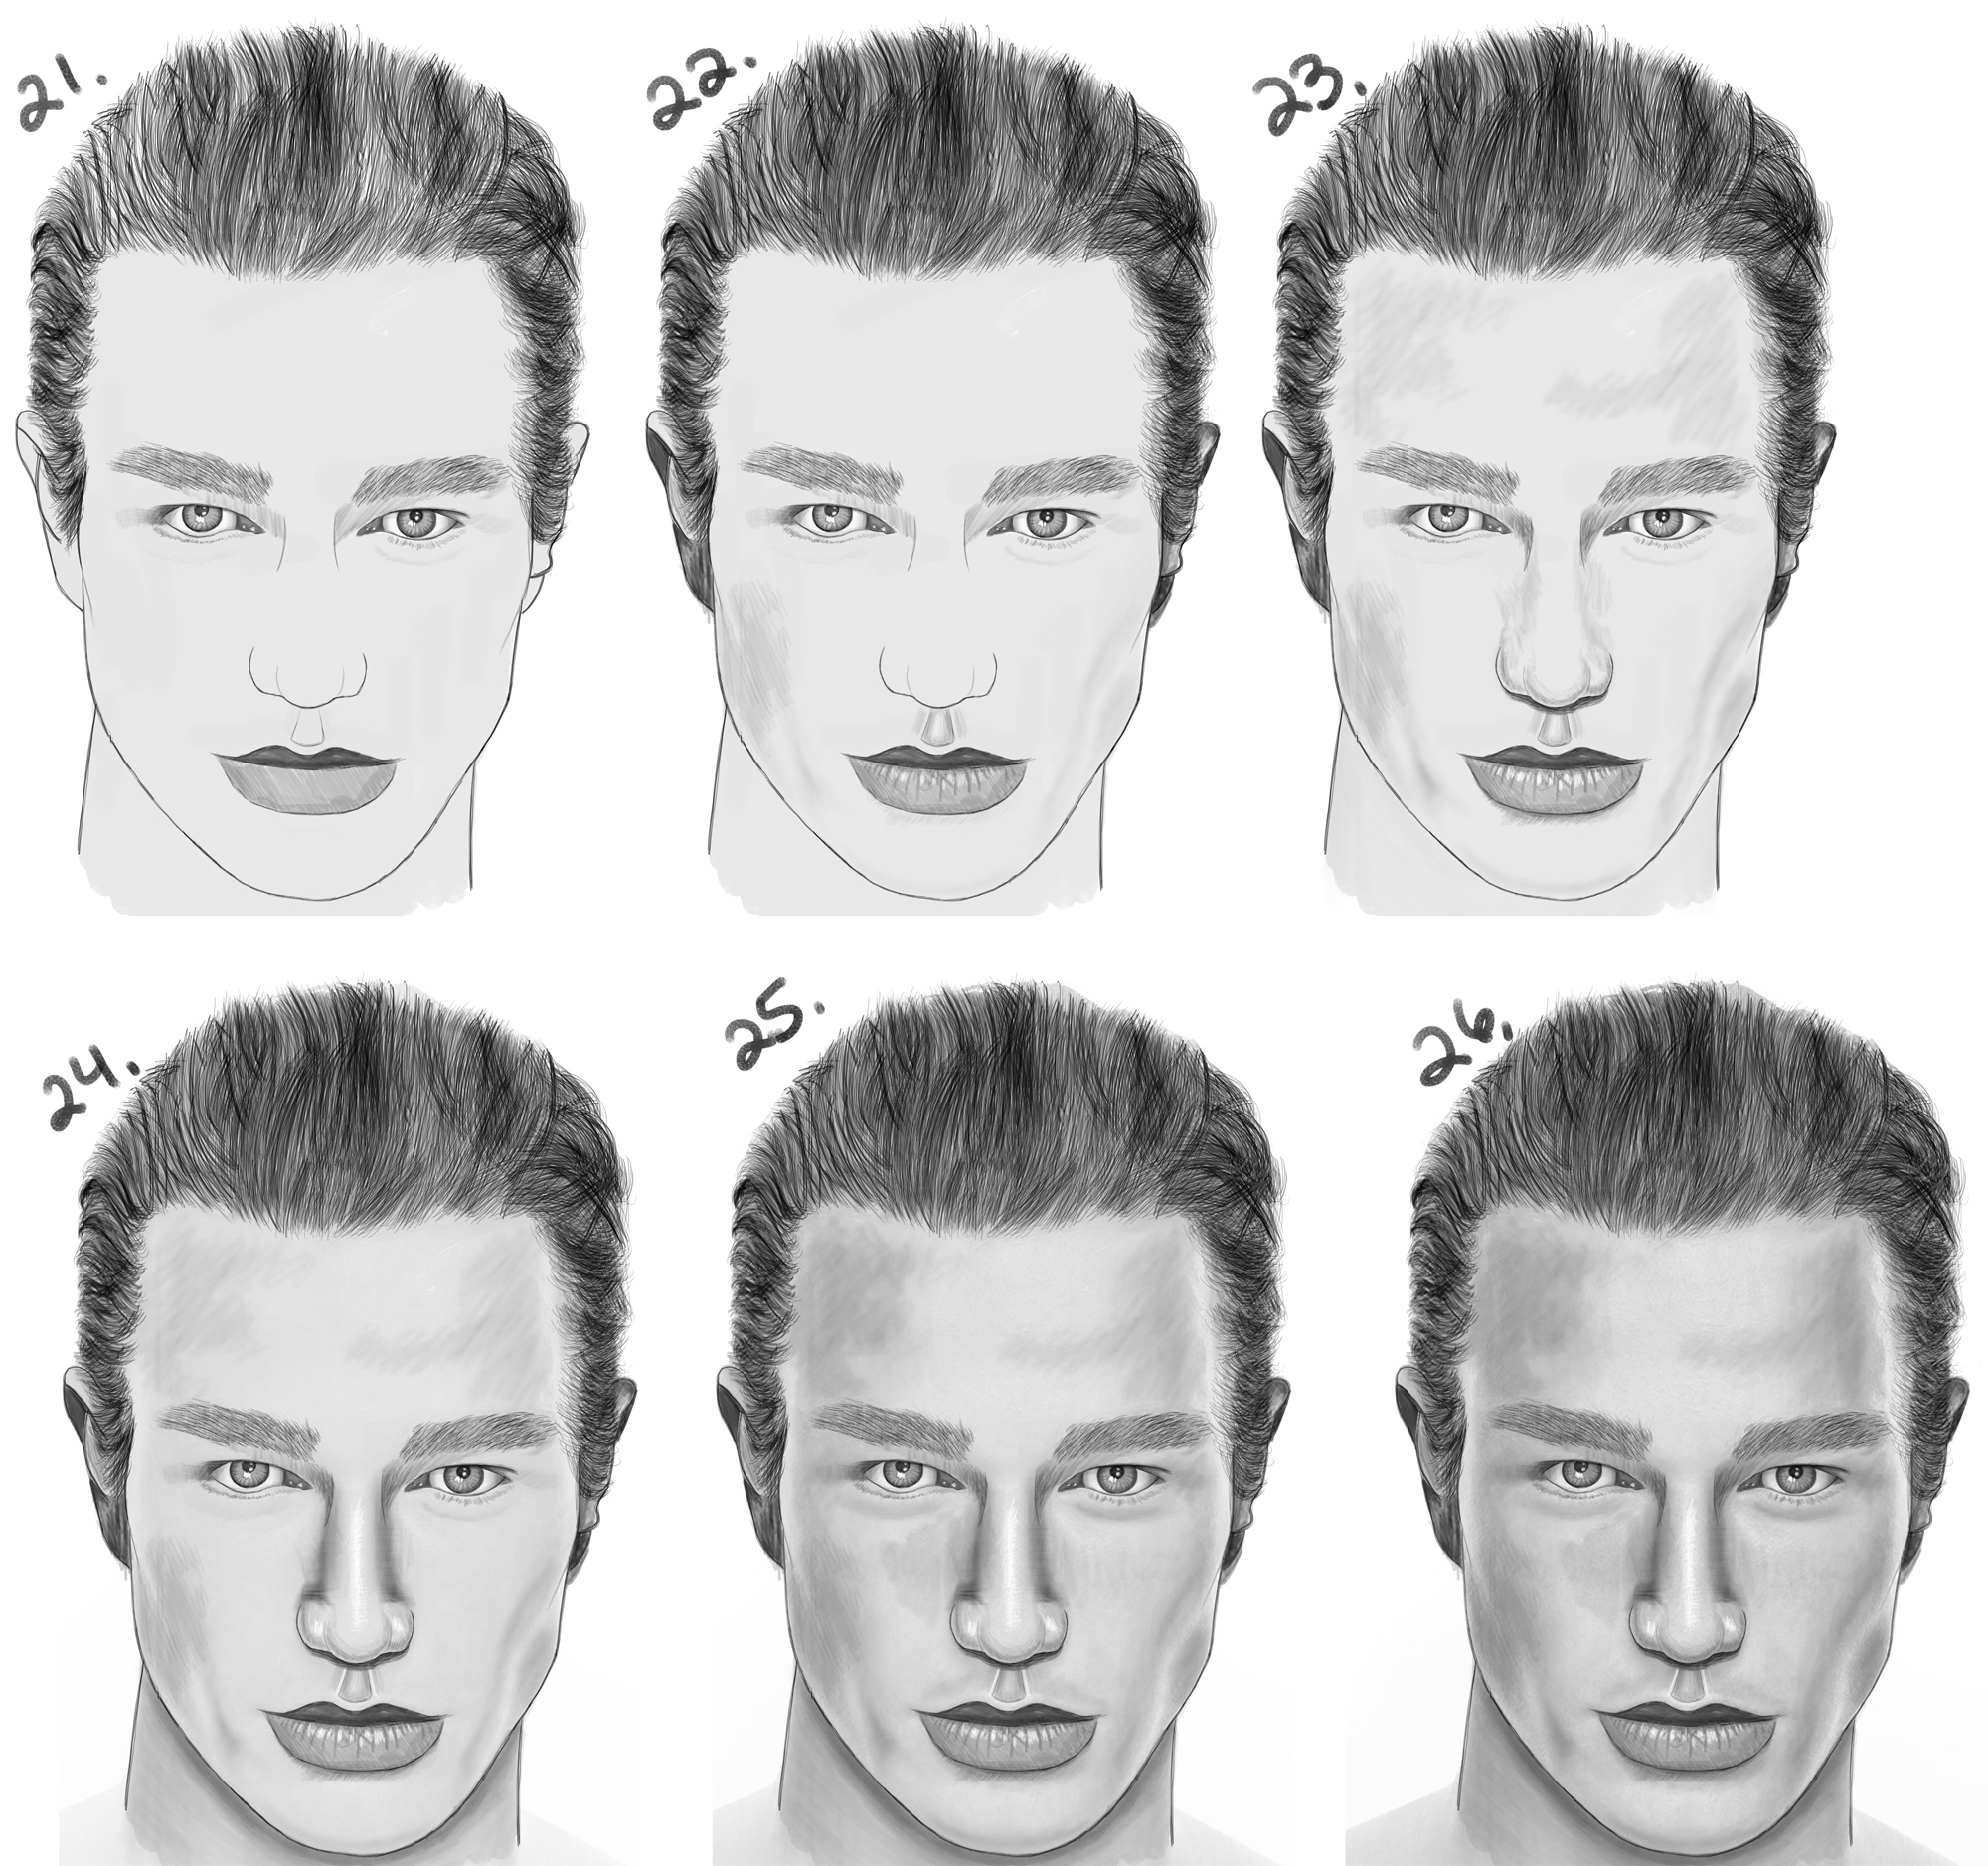 Learn How to Draw a Handsome Man's Face from the Front View (Male) Simple Steps Drawing Lesson for Beginners